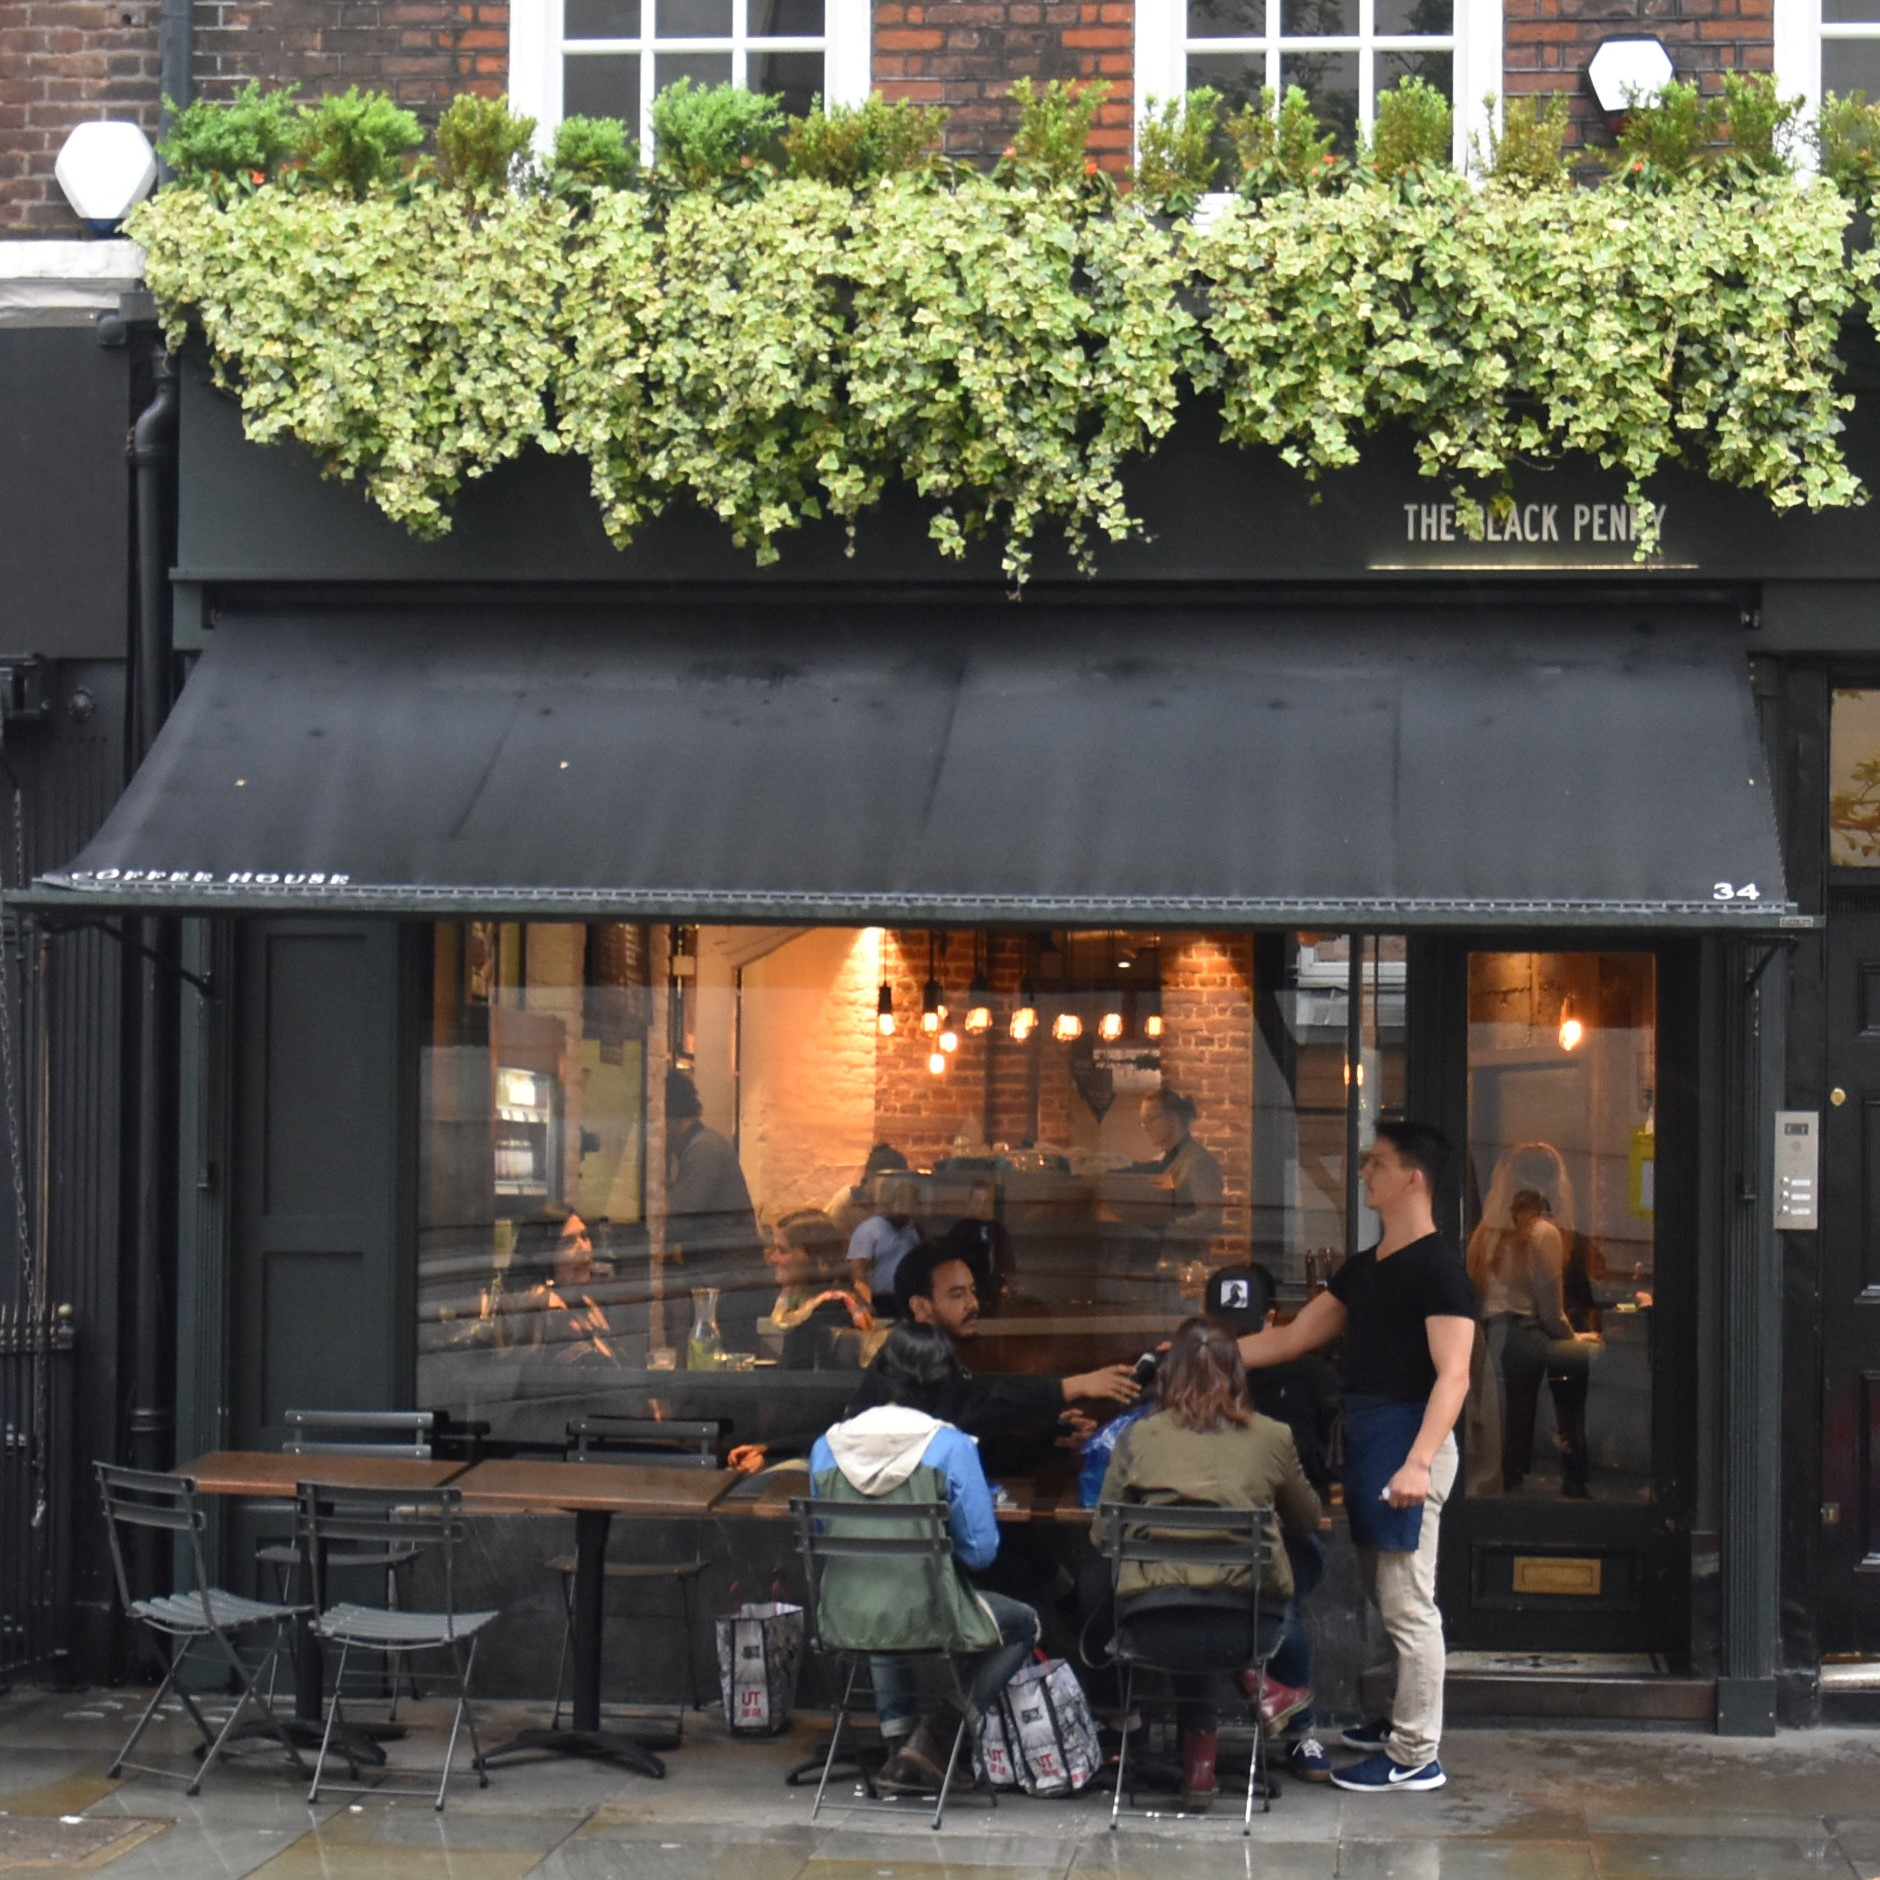 The front of The Black Penny on London's Great Queen Street, four small tables sheltering under the black awning.